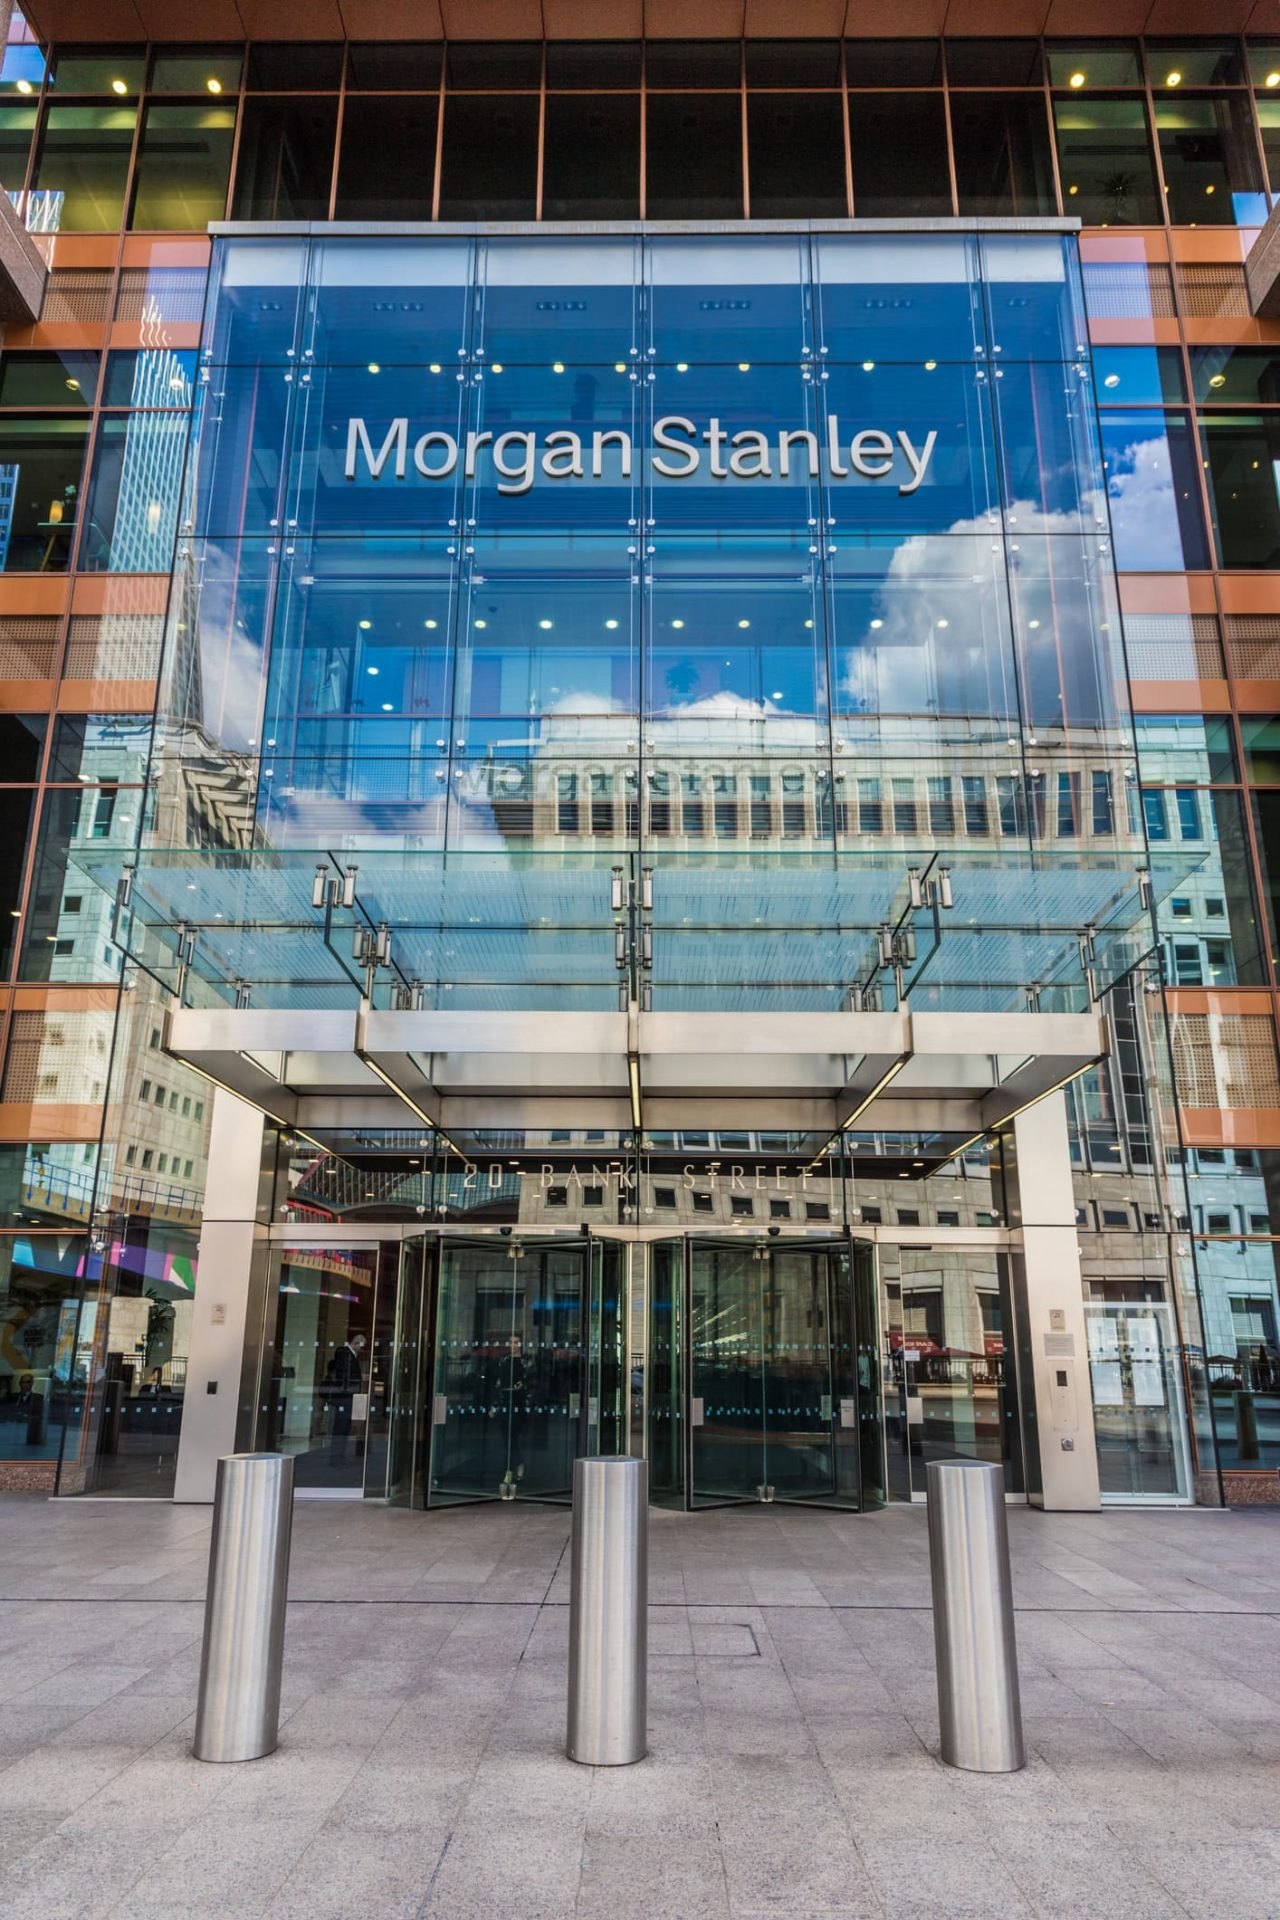 https://www.gmi-co.com/wp-content/uploads/2021/06/morgan-stanley-will-bar-workers-without-covid-vaccinations-from-most-new-york-offices-beginning-july-12-1280x1920.jpg